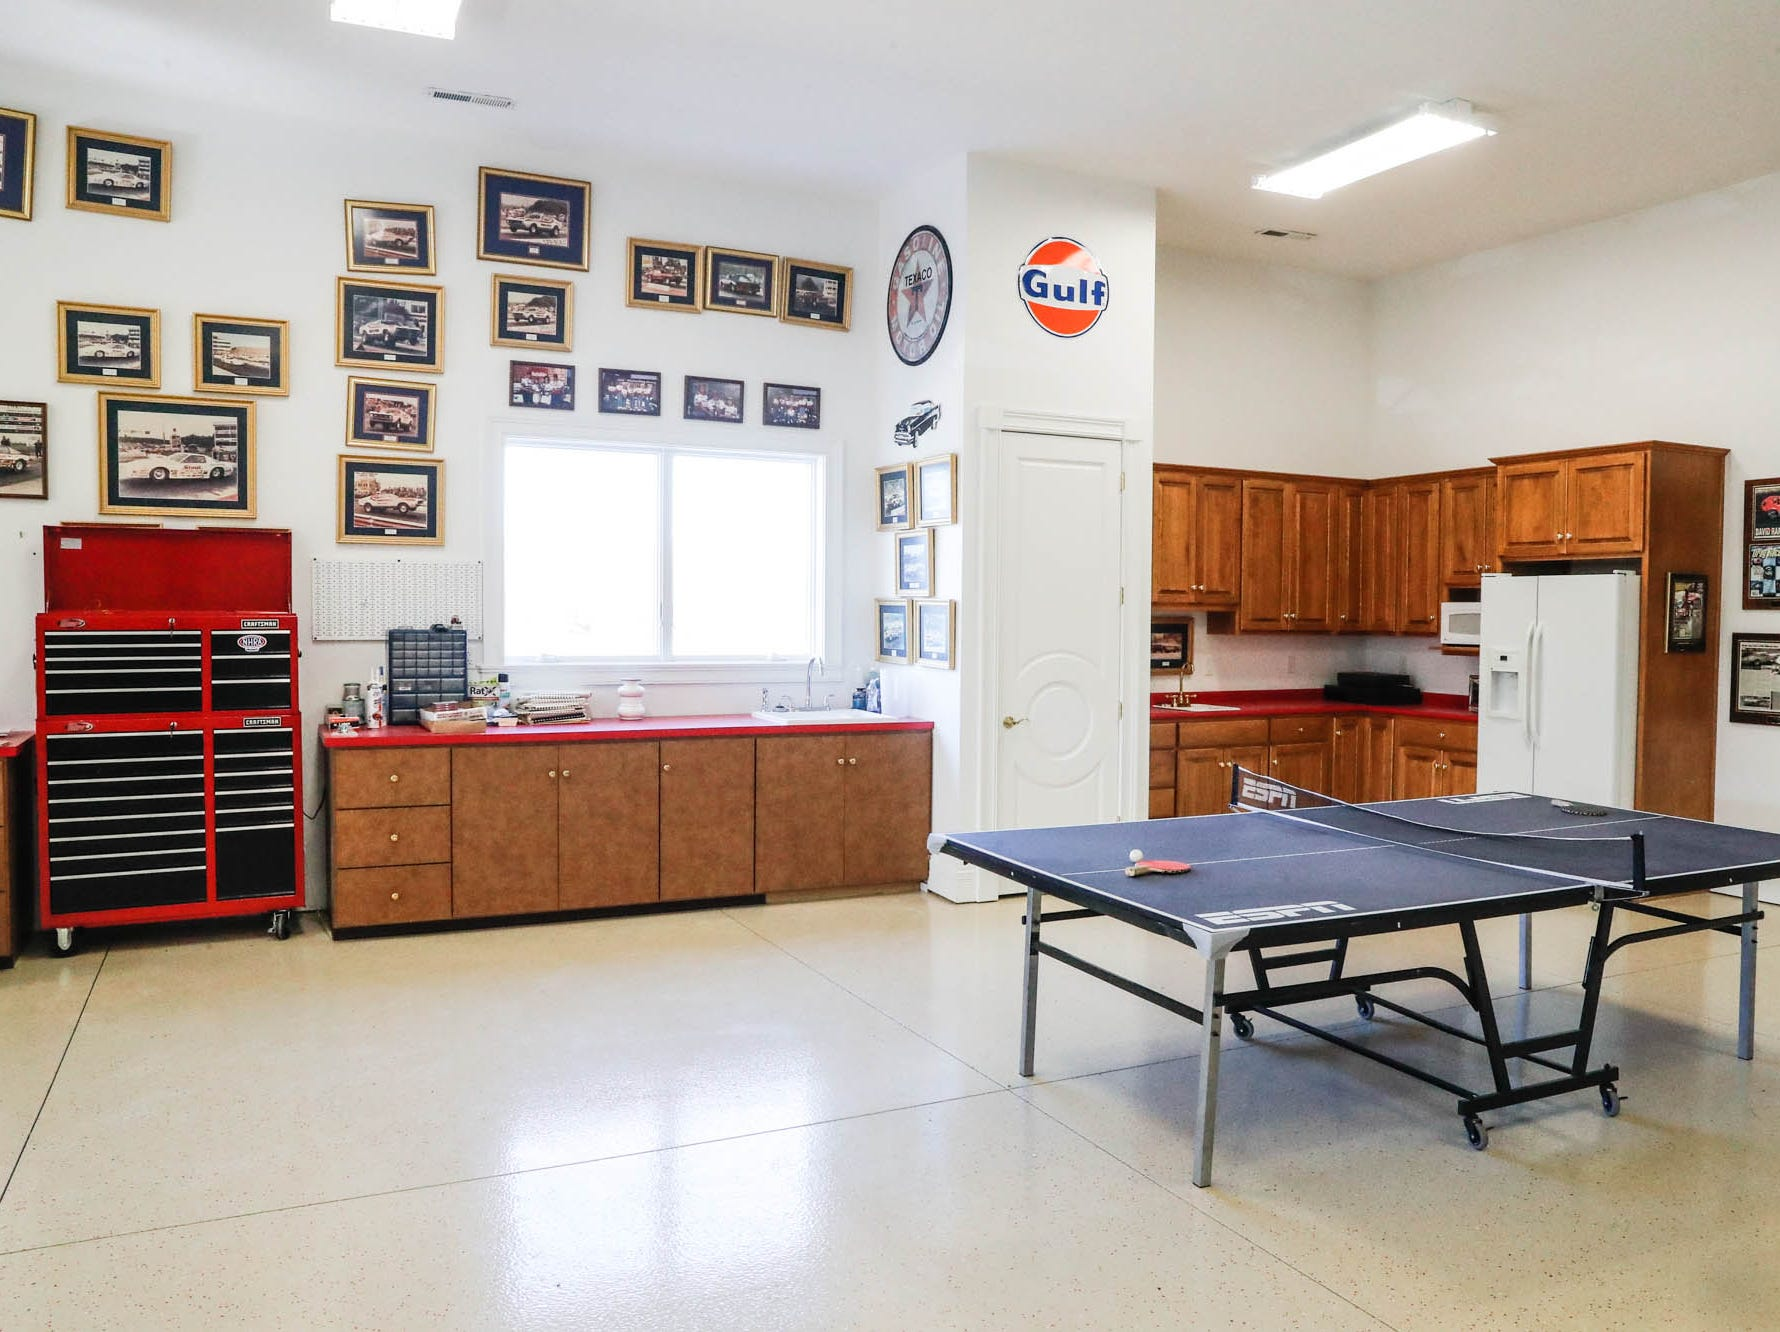 An unattached garage with kitchenette, has room for a fleet of cars and a motorhome, at a Greenwood home up for sale at 1216 Stone Ridge Court, Greenwood, Ind. on Wednesday, Jan. 30, 2019. The home features 8,234 square feet, four bedrooms, two master suites, a 10 car garage, and an exercise room.